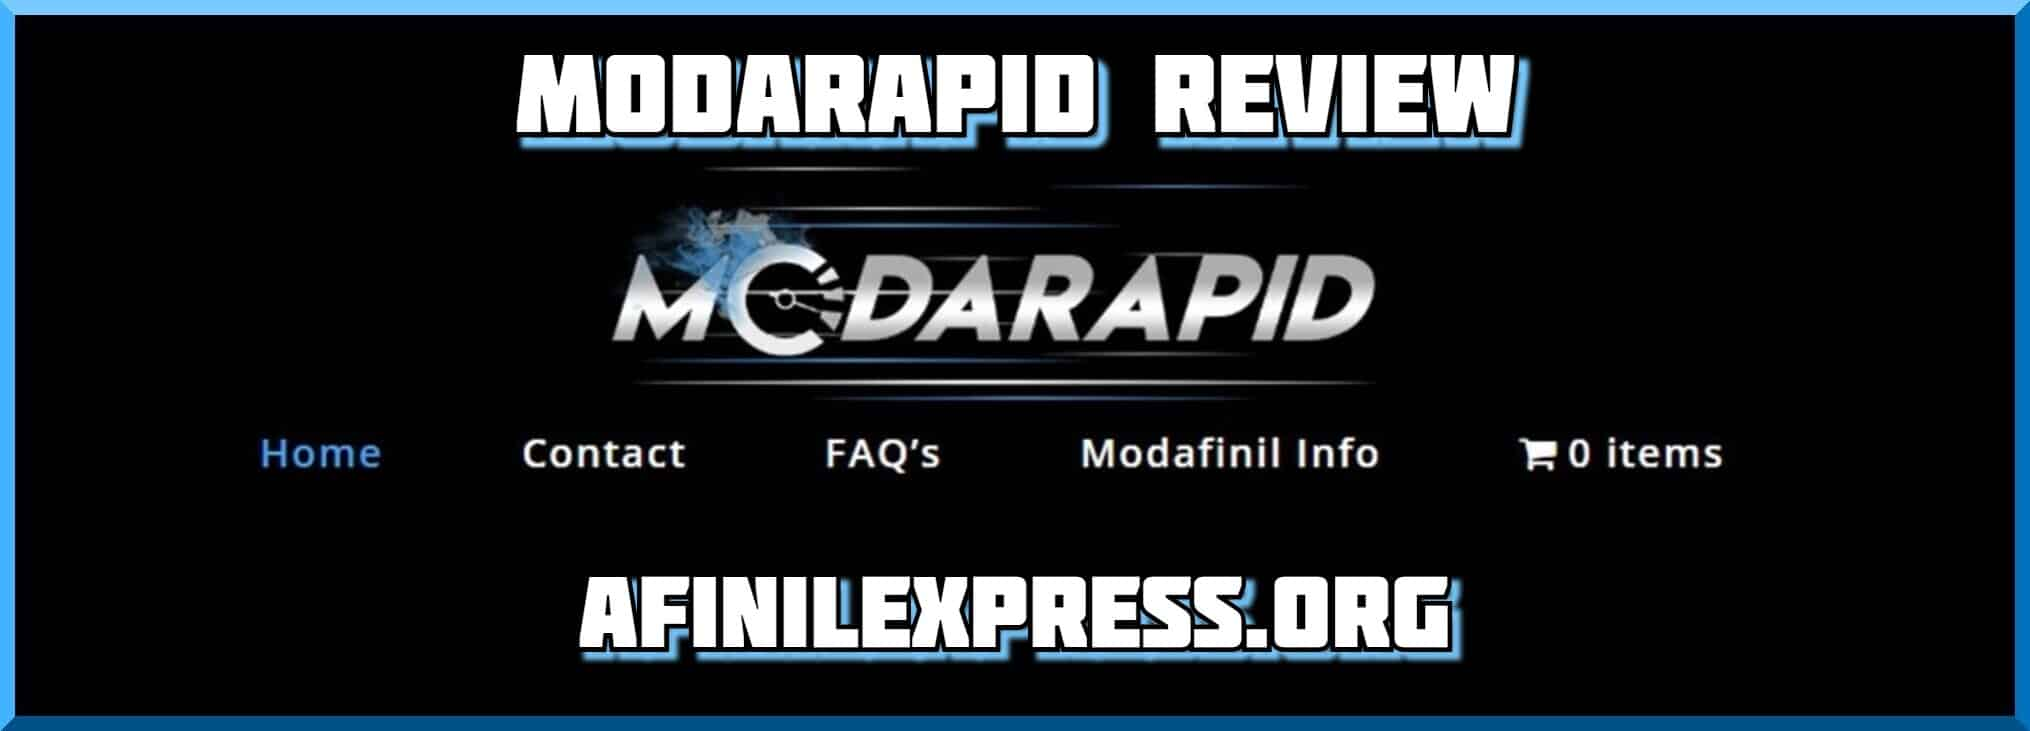 modarapid review